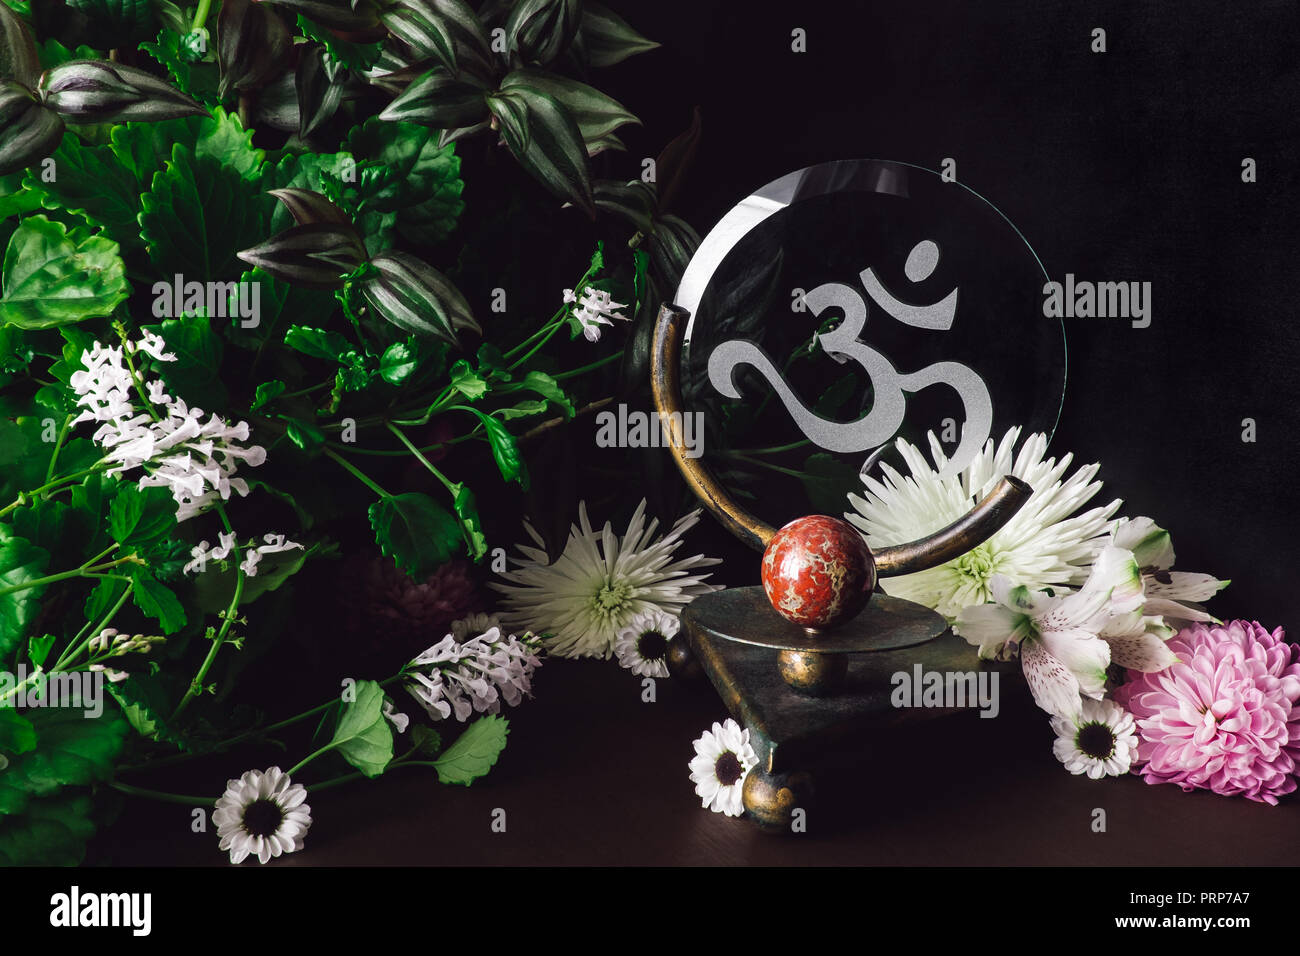 Red Jasper Sphere on Om Altar with Mixed Flowers and Foliage Stock Photo